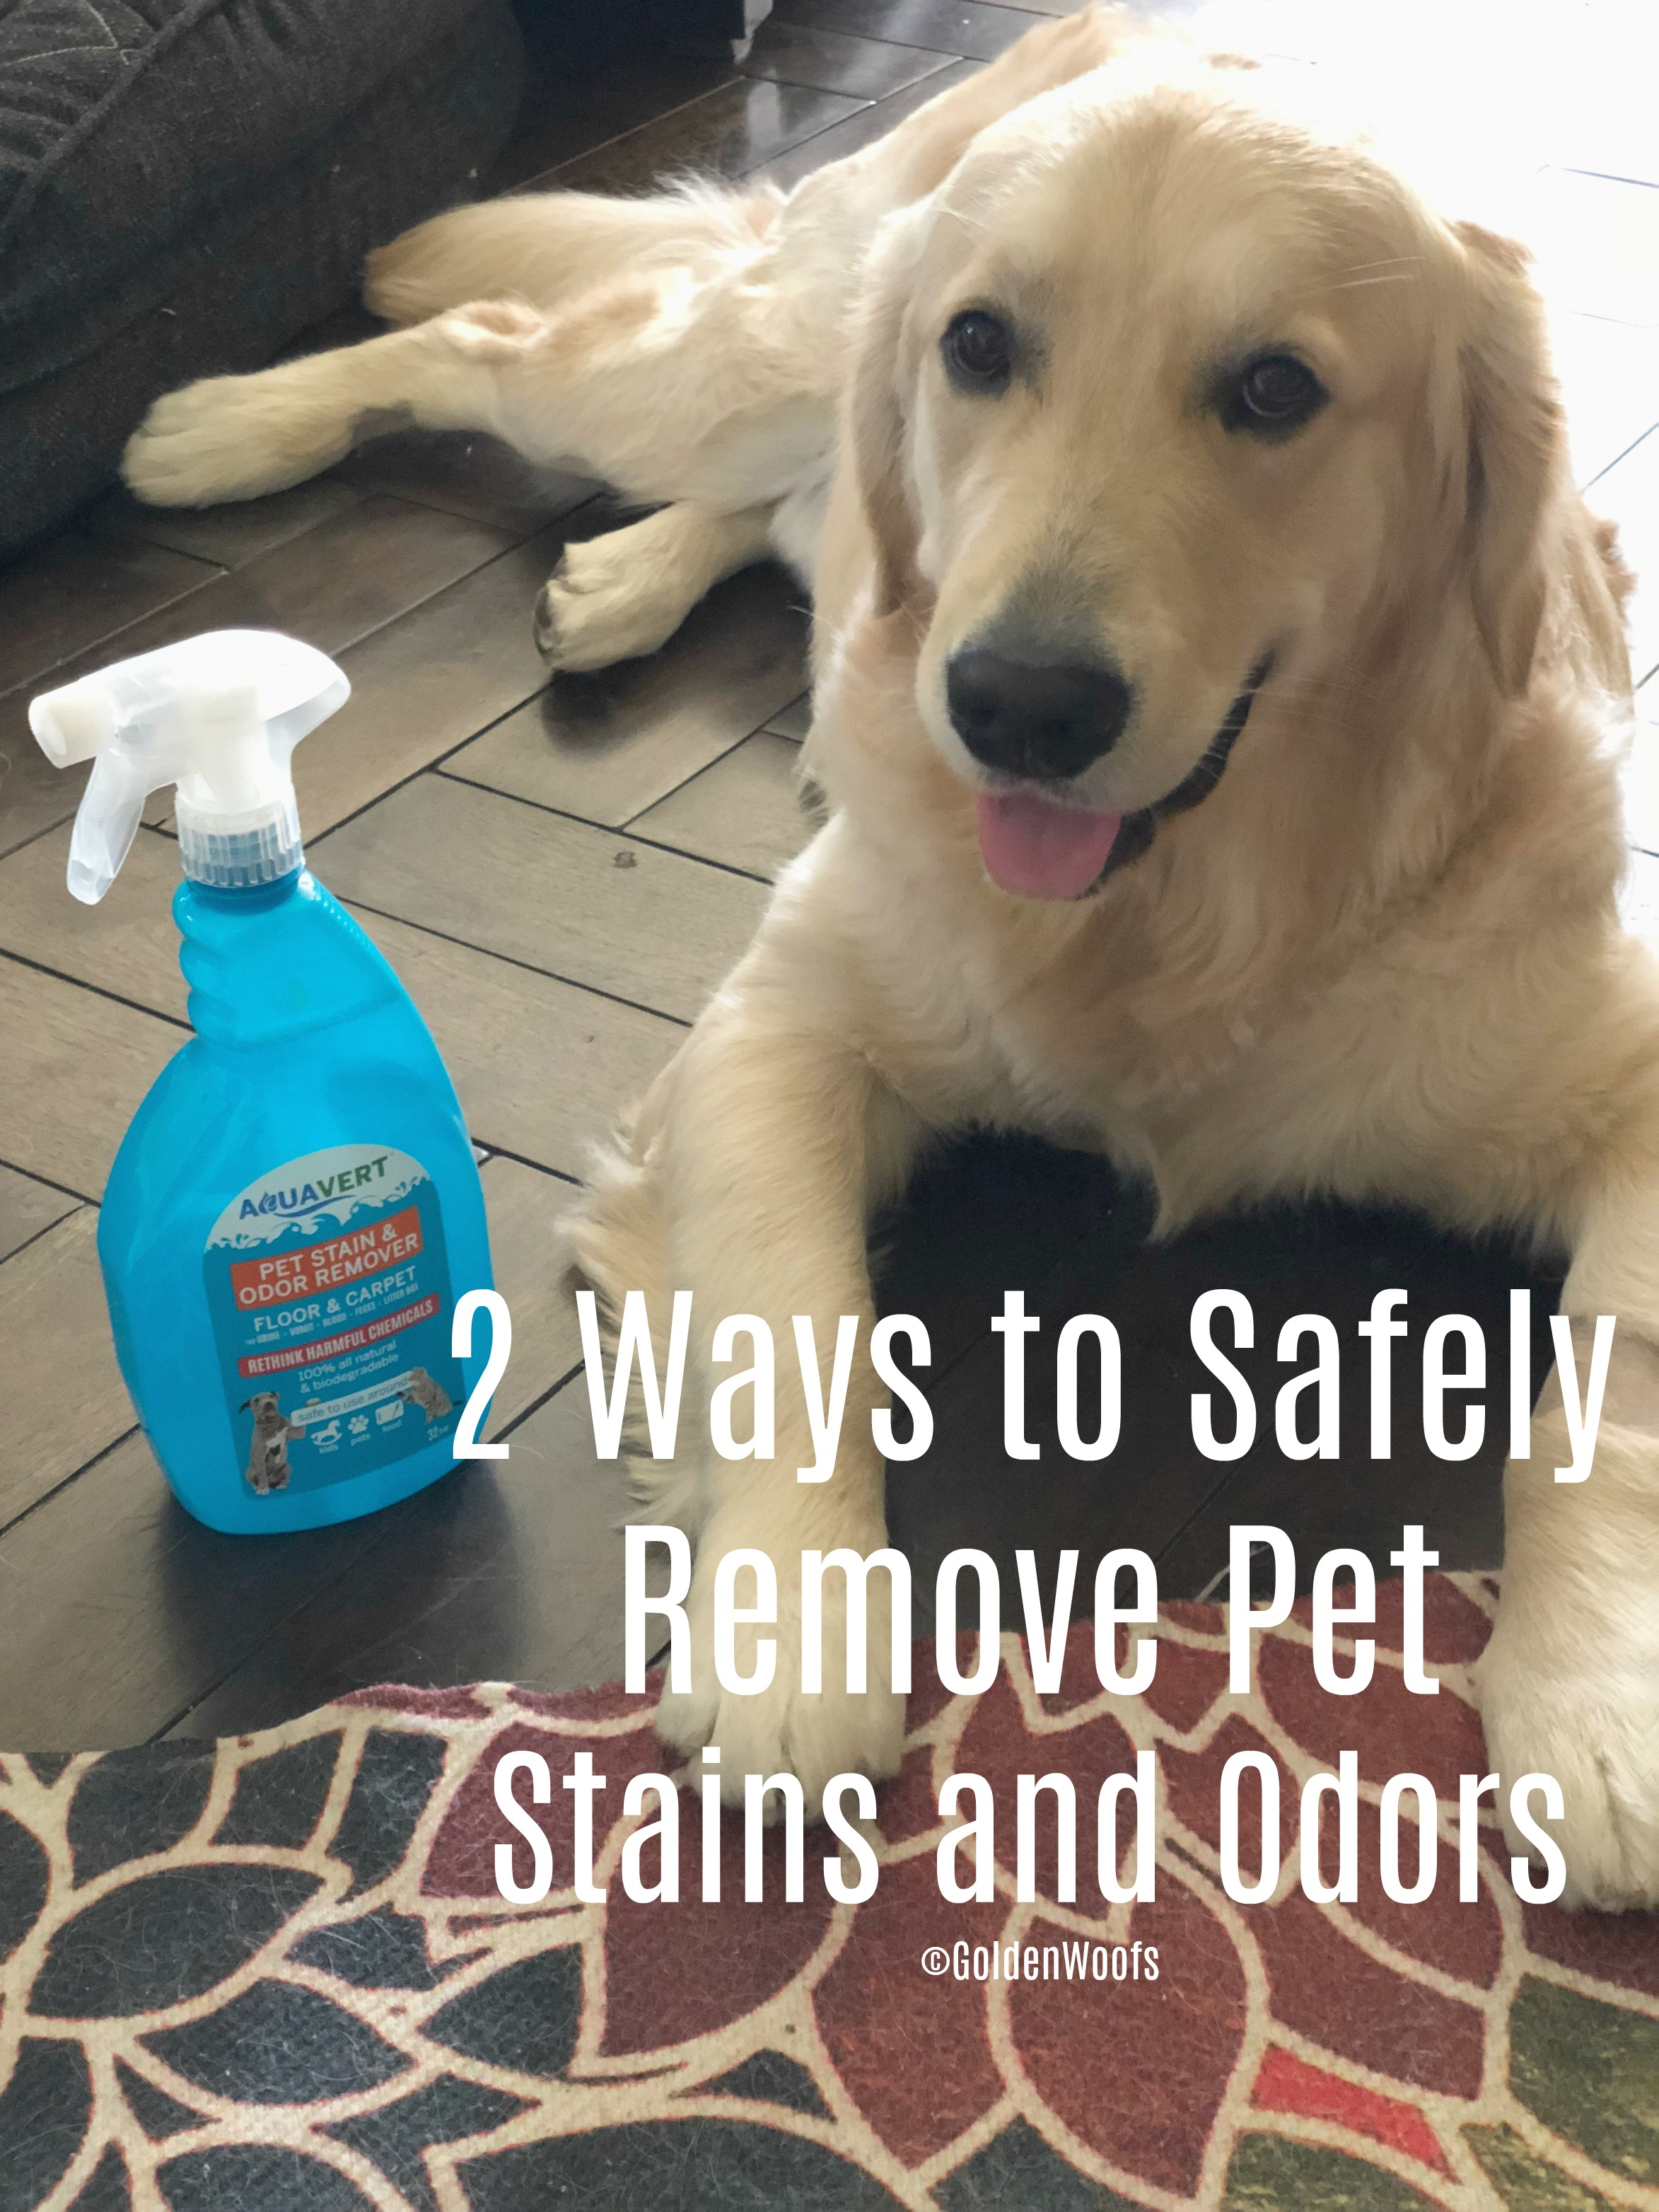 Safely Remove Pet Stains and Odors